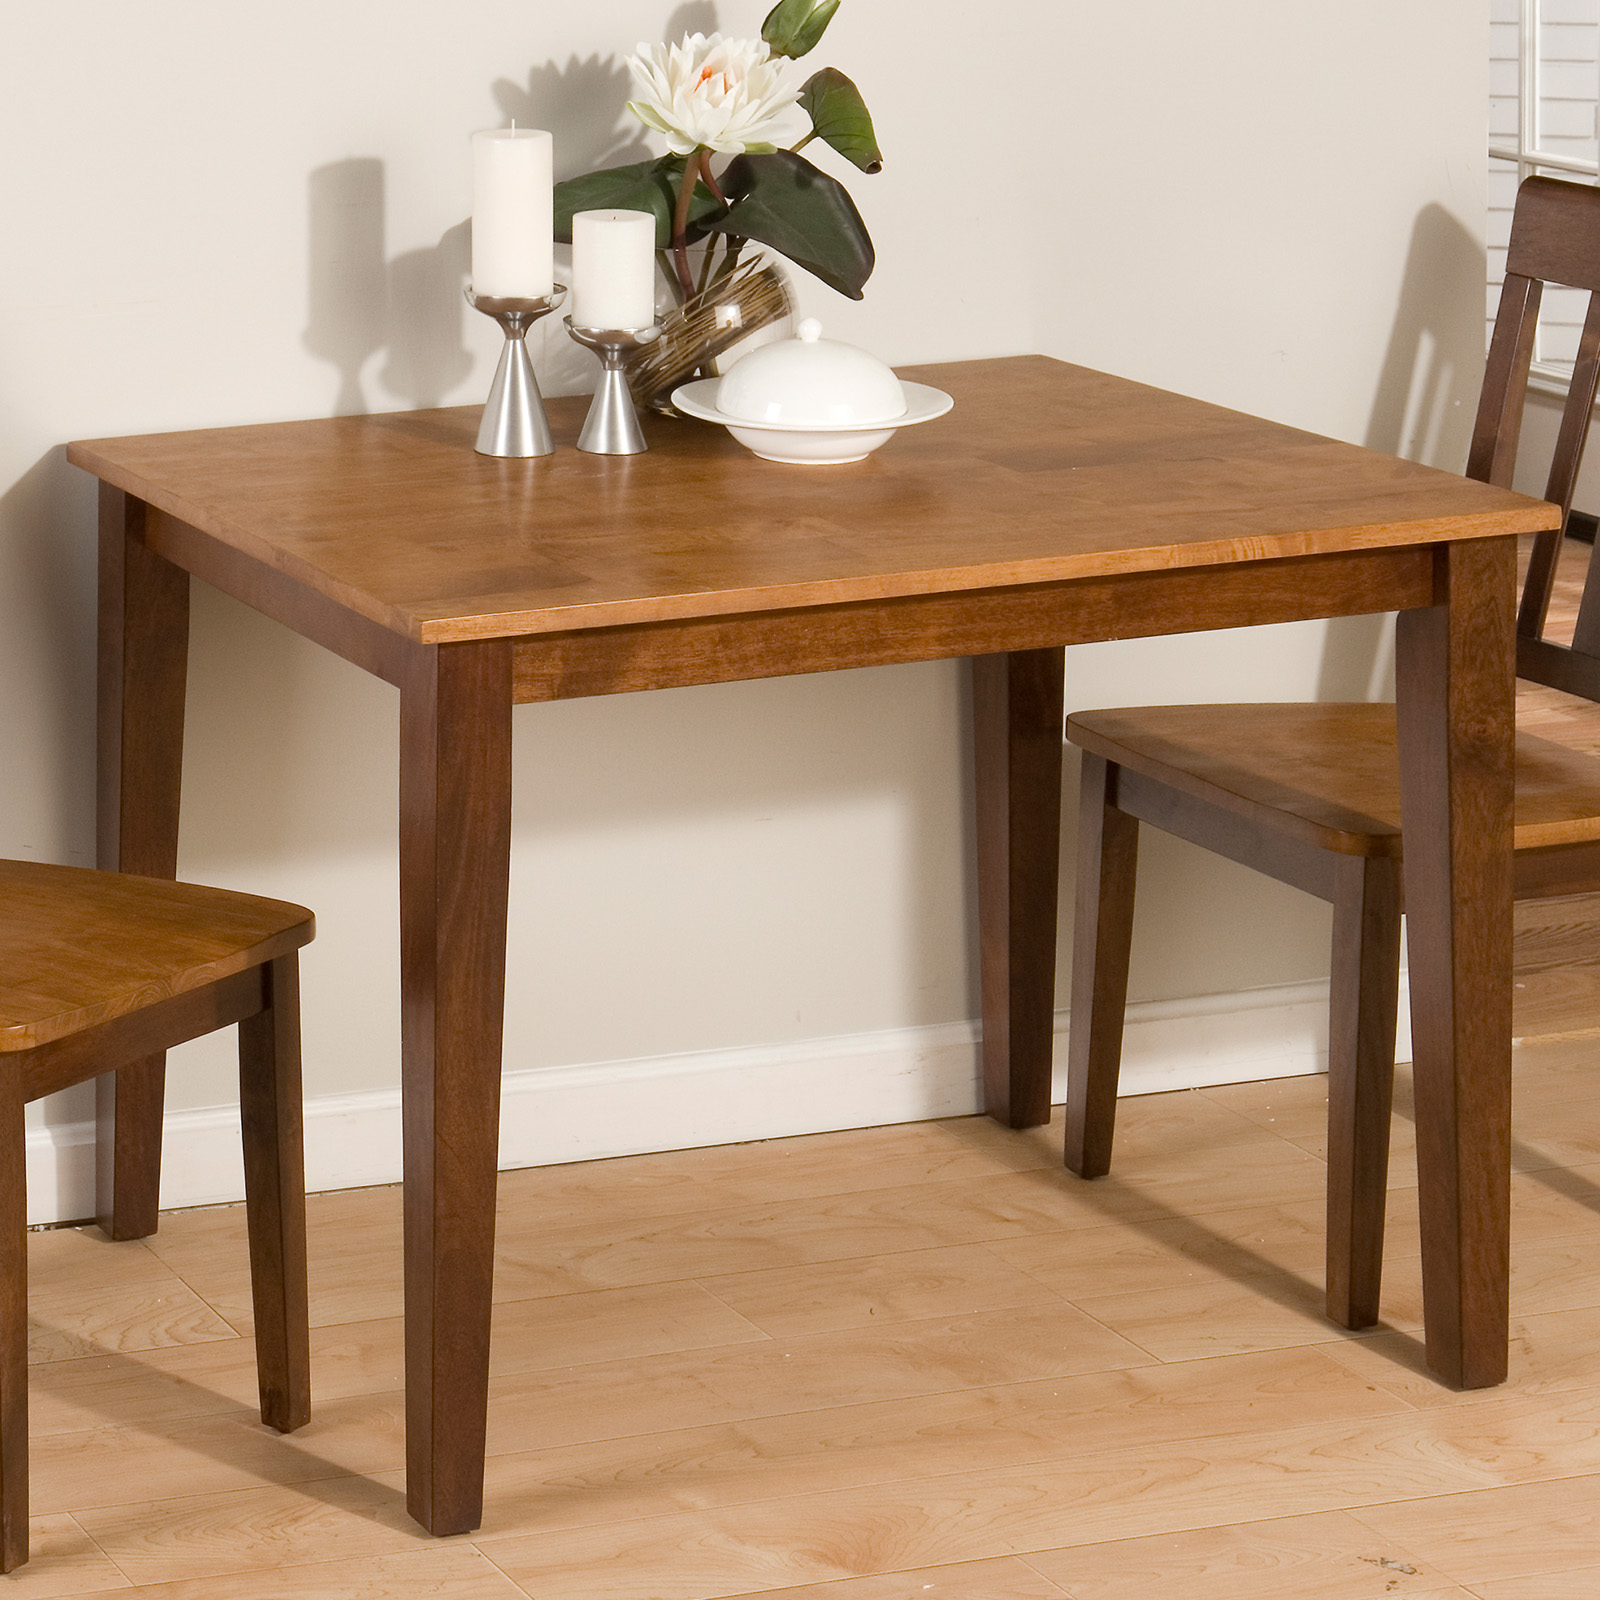 small rectangular kitchen table sets small kitchen table Jofran Kura Canyon Small Rectangular Dining Table at Hayneedle